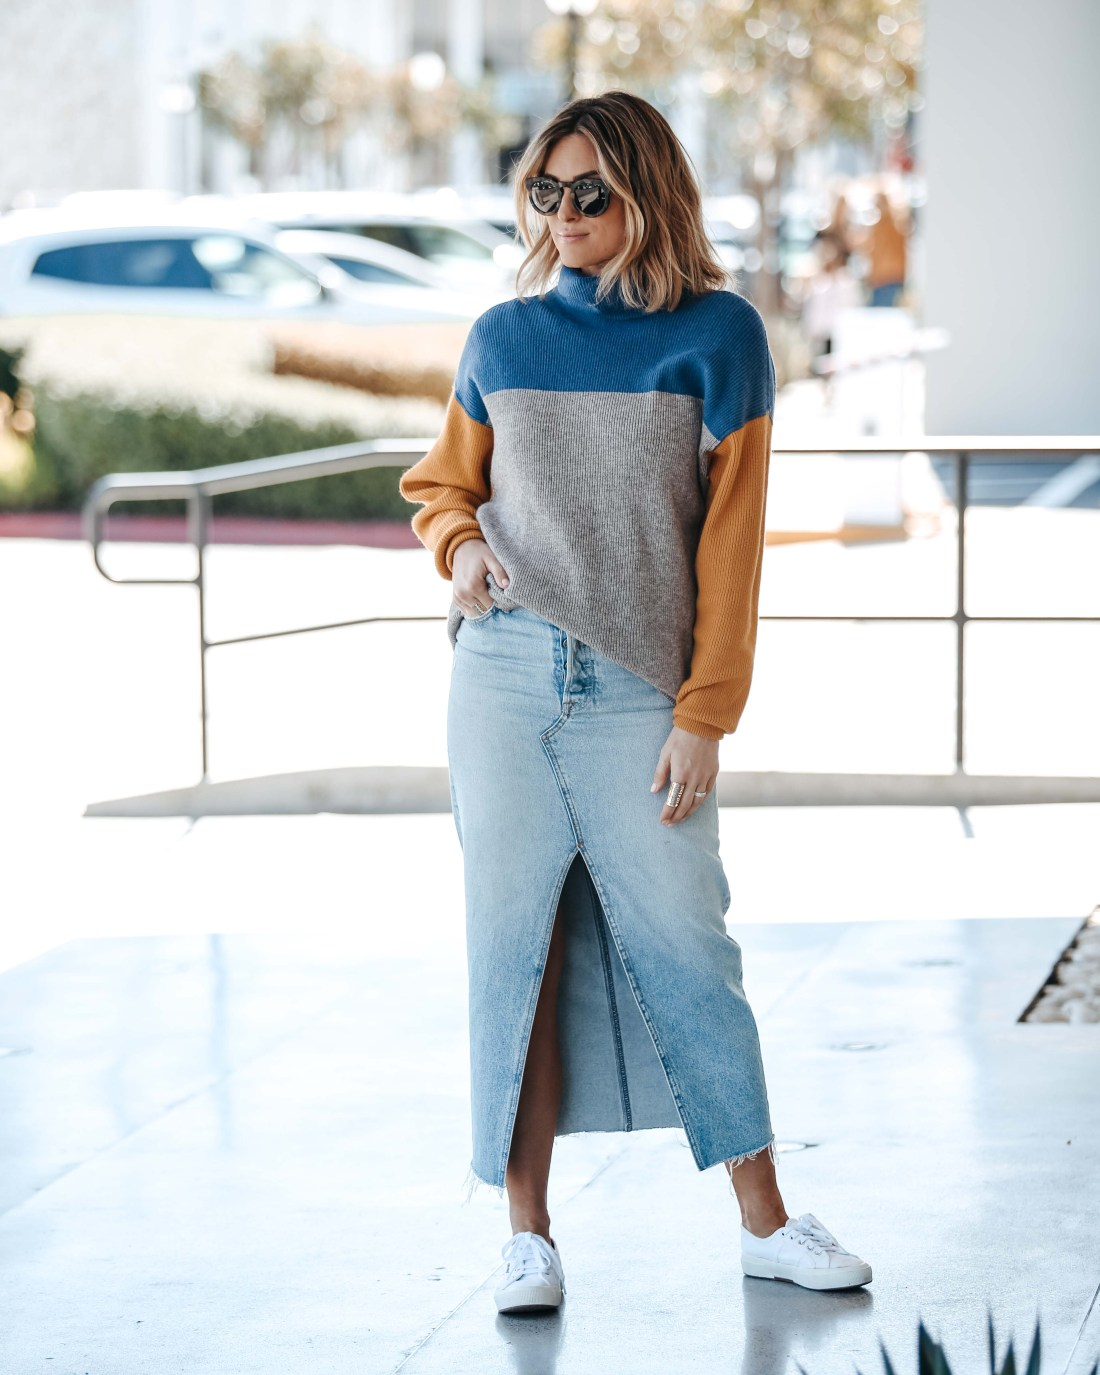 Colorblock Sweater Free People | High Rise Denim Midi Skirt | White Sneakers